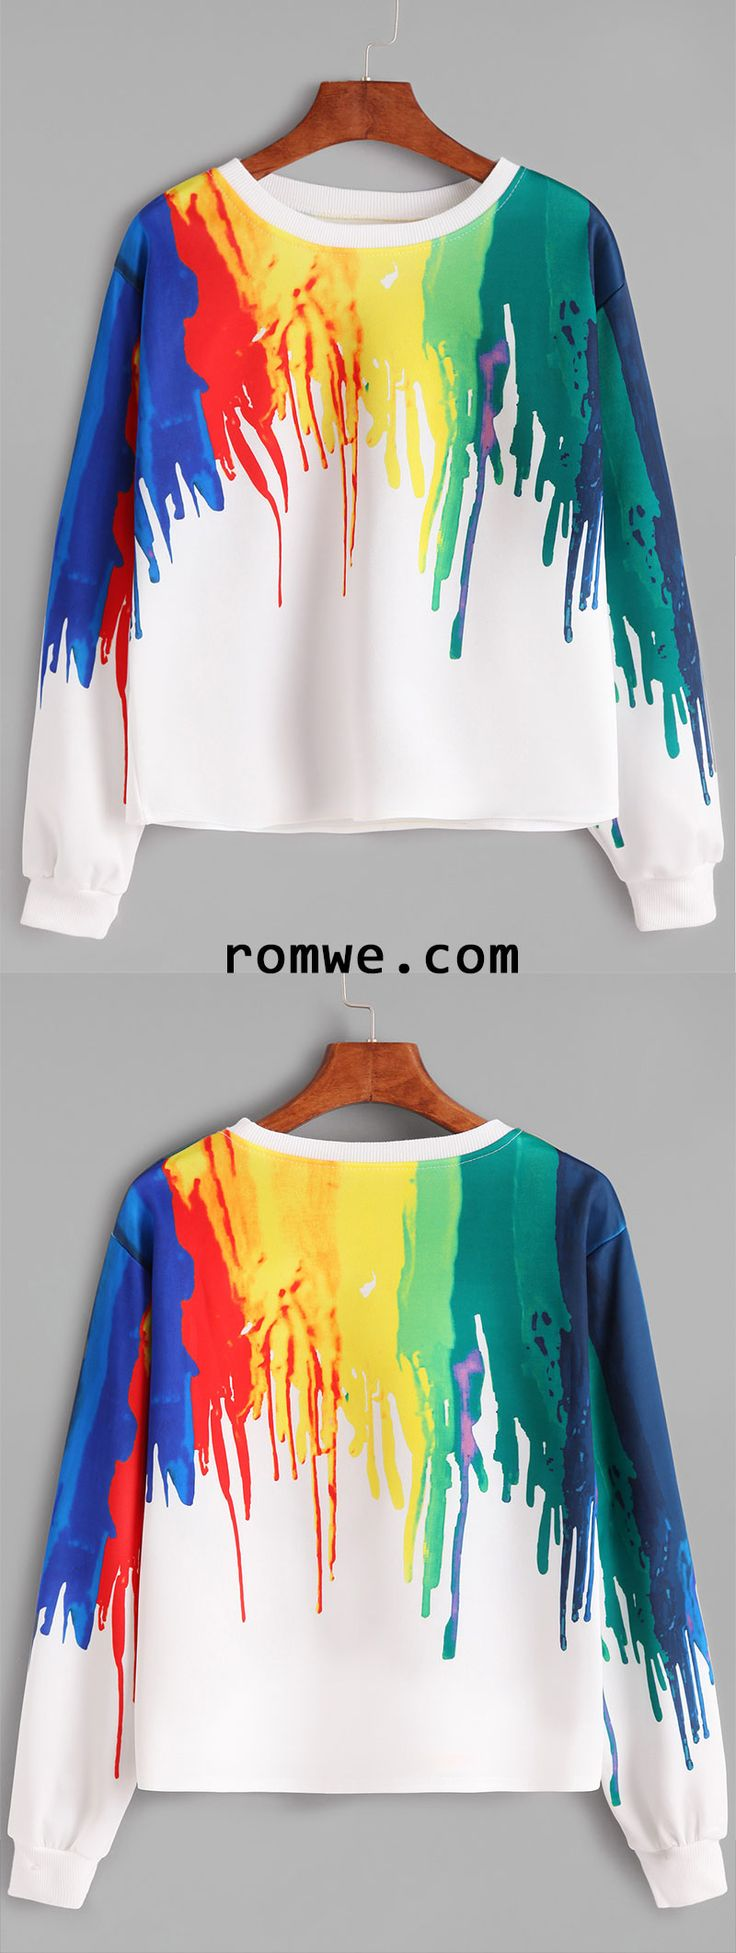 Have it with $14.99! This Splash Print sweatshirt gonna keep all the cold away with its soft & warm feel. I do love this cute letter print sweatshirt. Take it from romwe.com